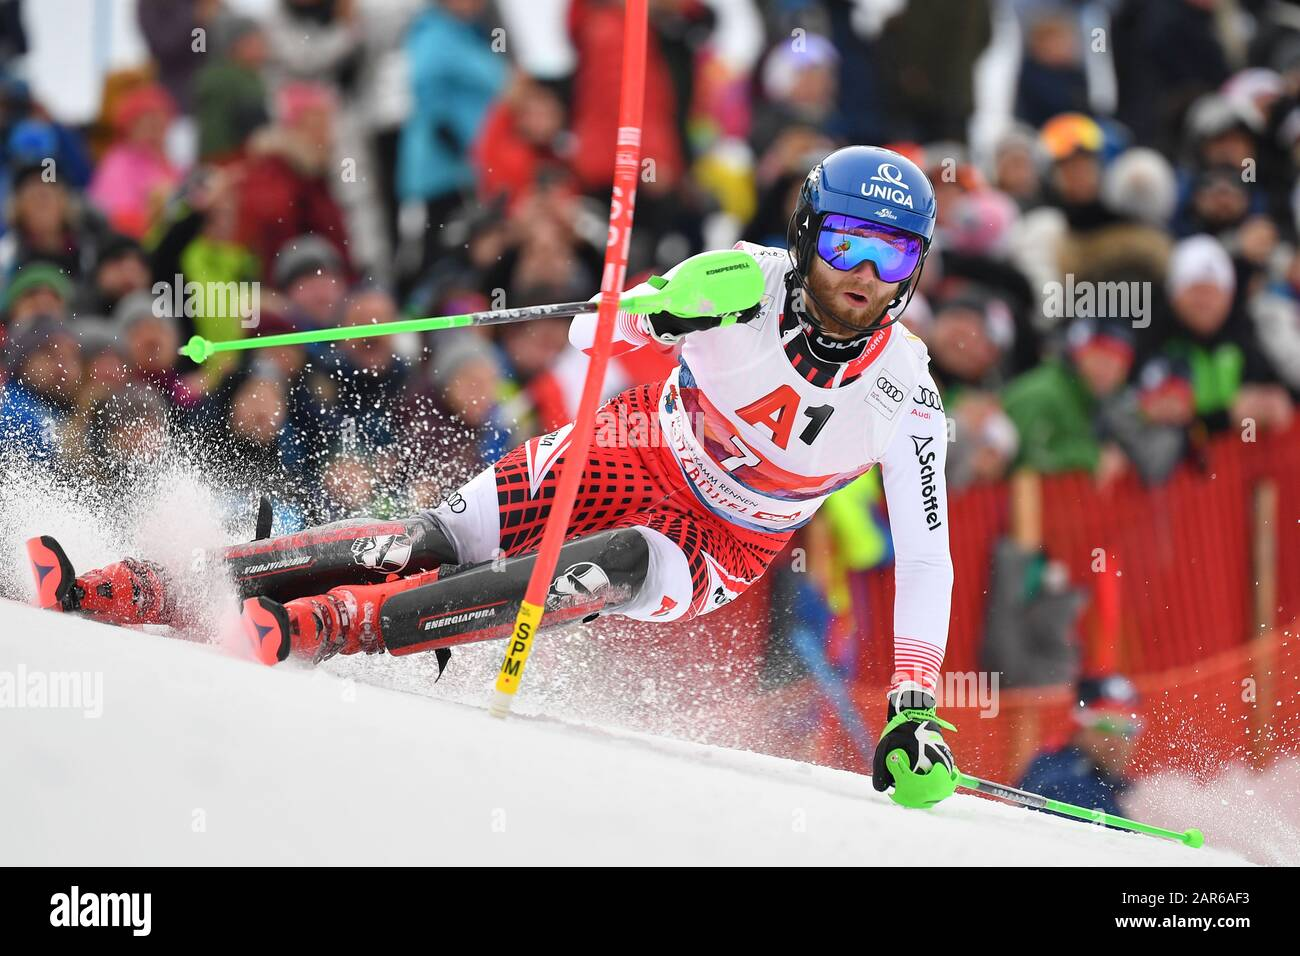 Marco SCHWARZ (AUT), action, alpine skiing, men's slalom, 80th Hahnenkamm race 2020, Kitzbuehel, Hahnenkamm, on January 26th, 2020 | usage worldwide Stock Photo